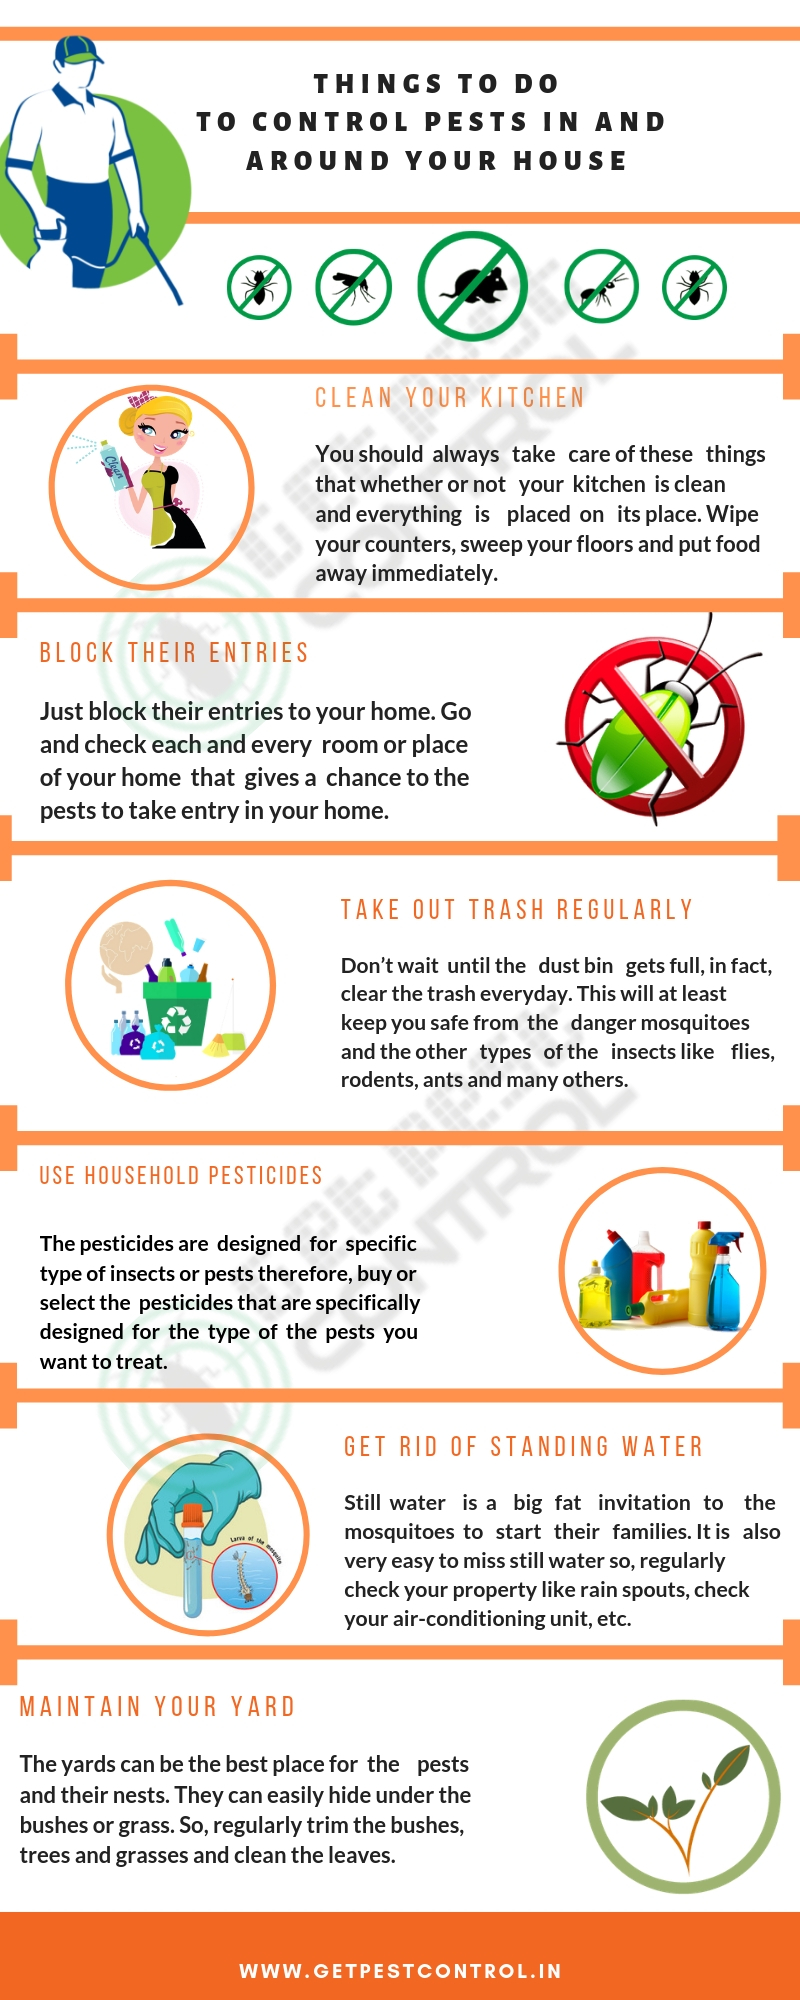 Things to do to control pest infographs